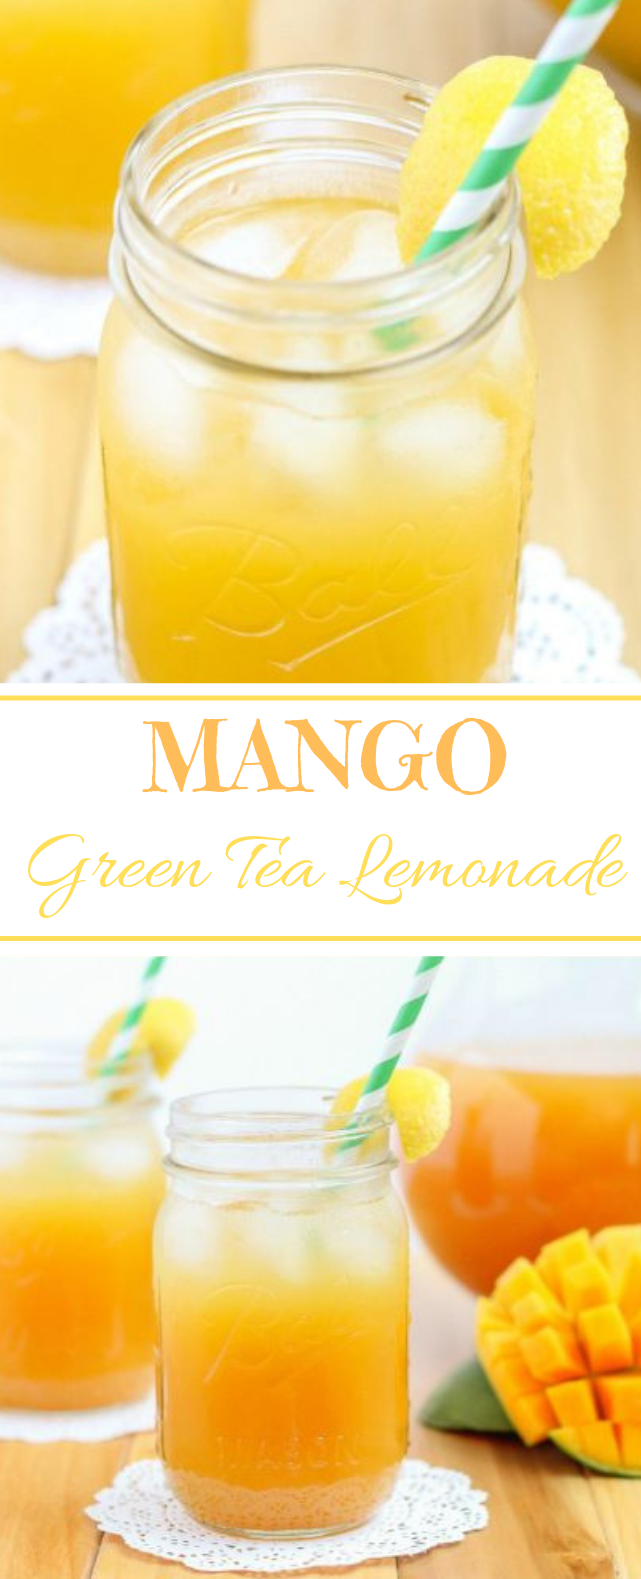 Mango Green Tea Lemonade #lemonade #summer